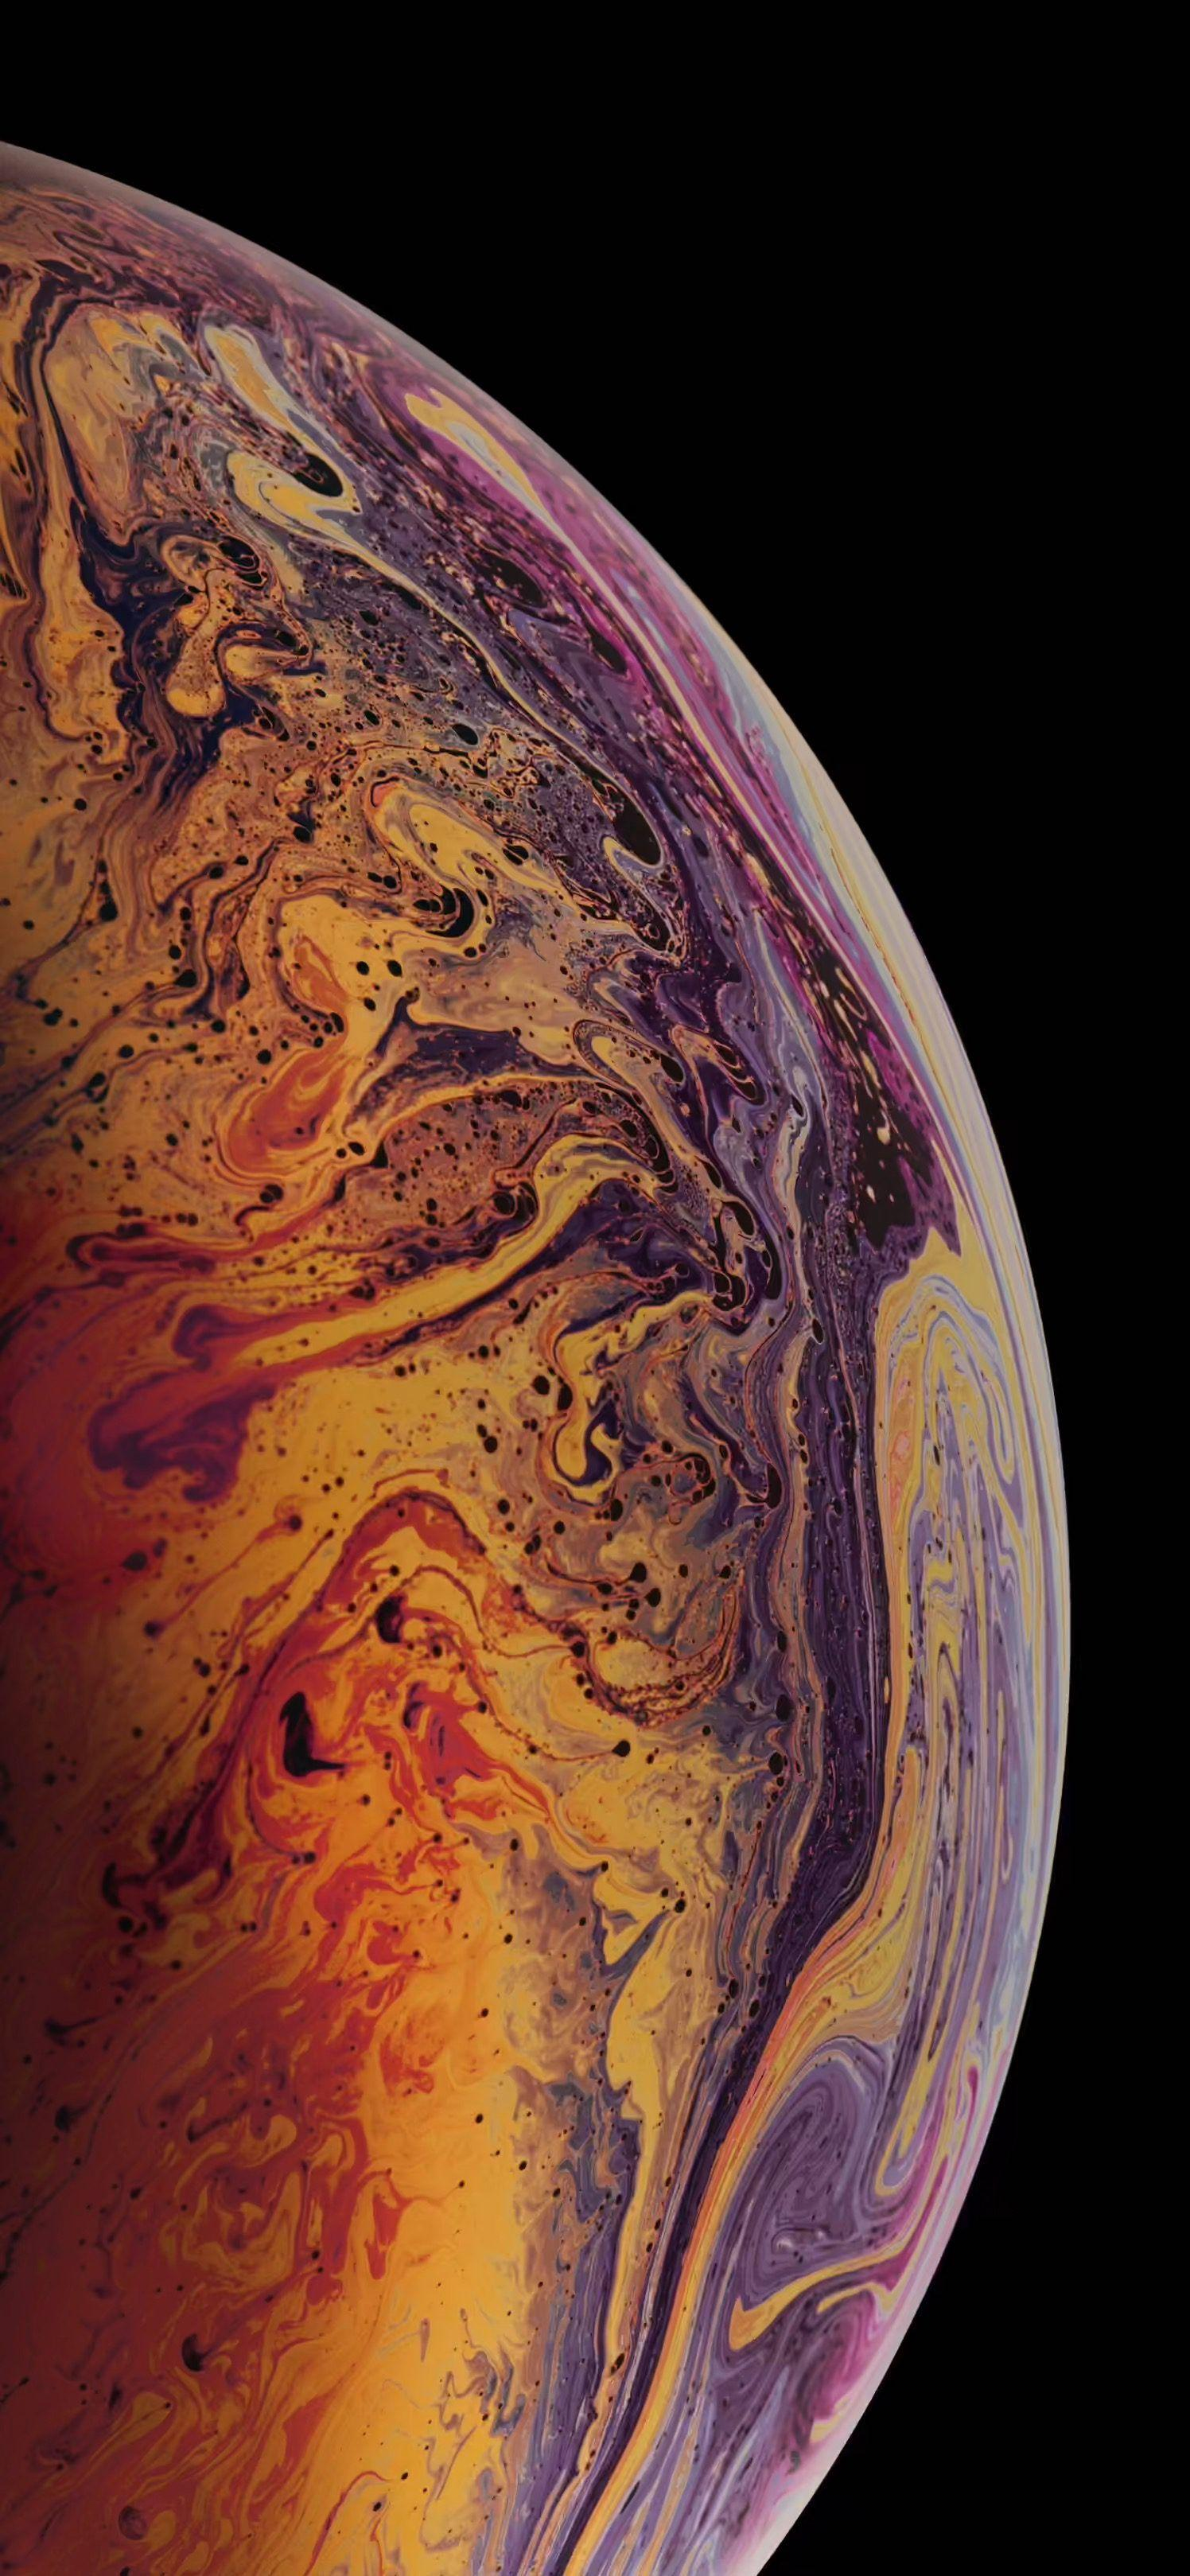 iPhone XS 4k Wallpapers - Wallpaper Cave